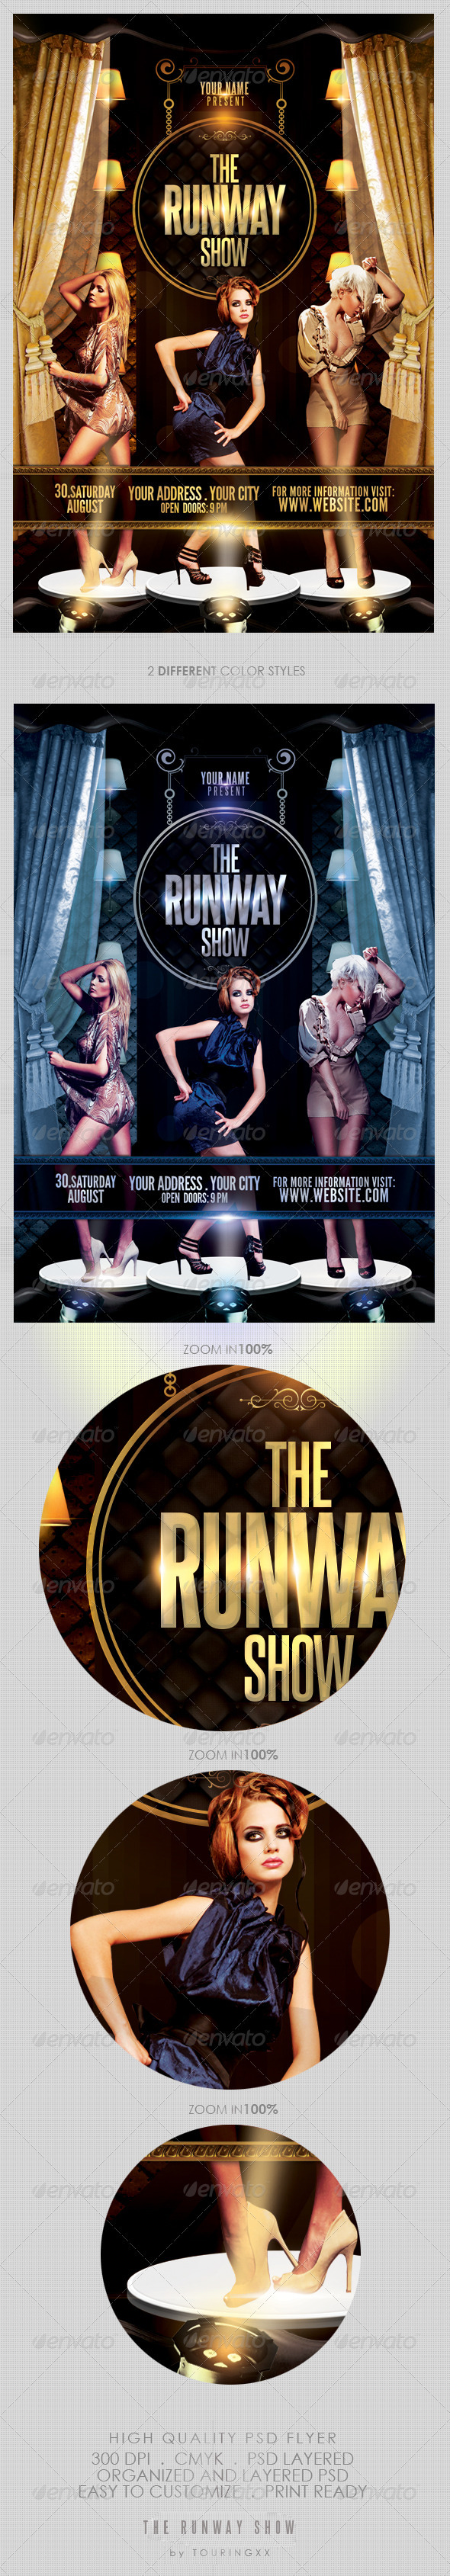 The Runway Show Flyer Template - Clubs & Parties Events